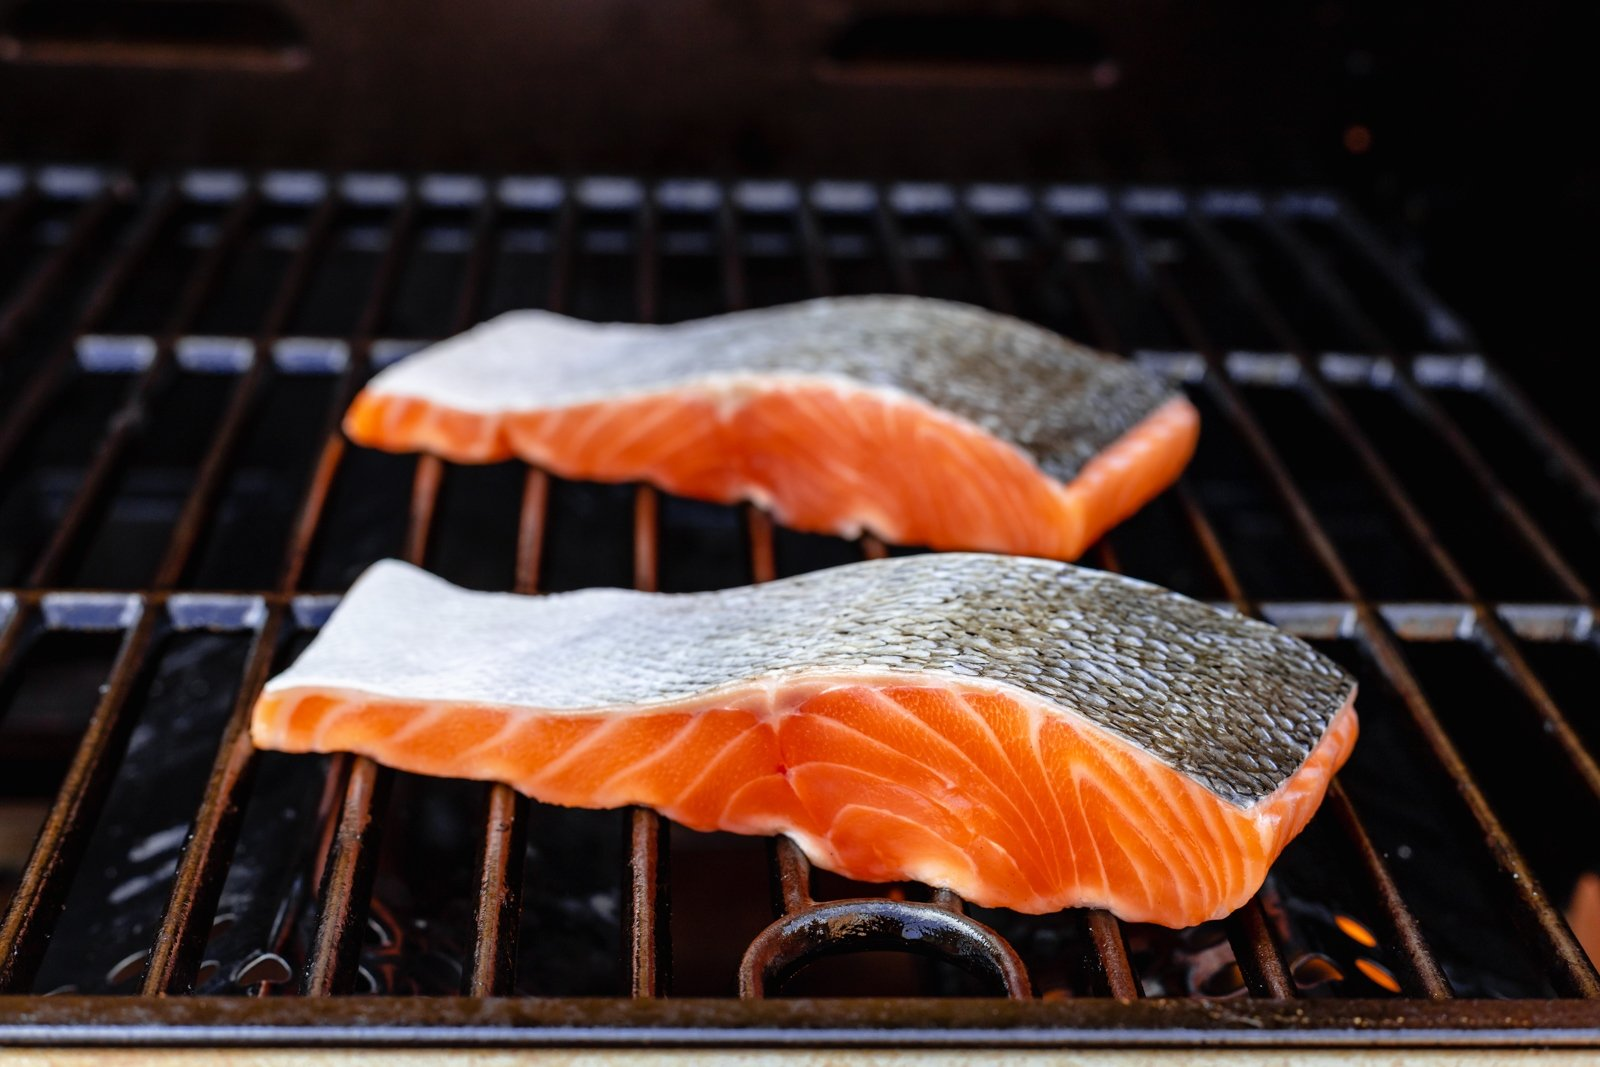 two pieces of salmon on a grill